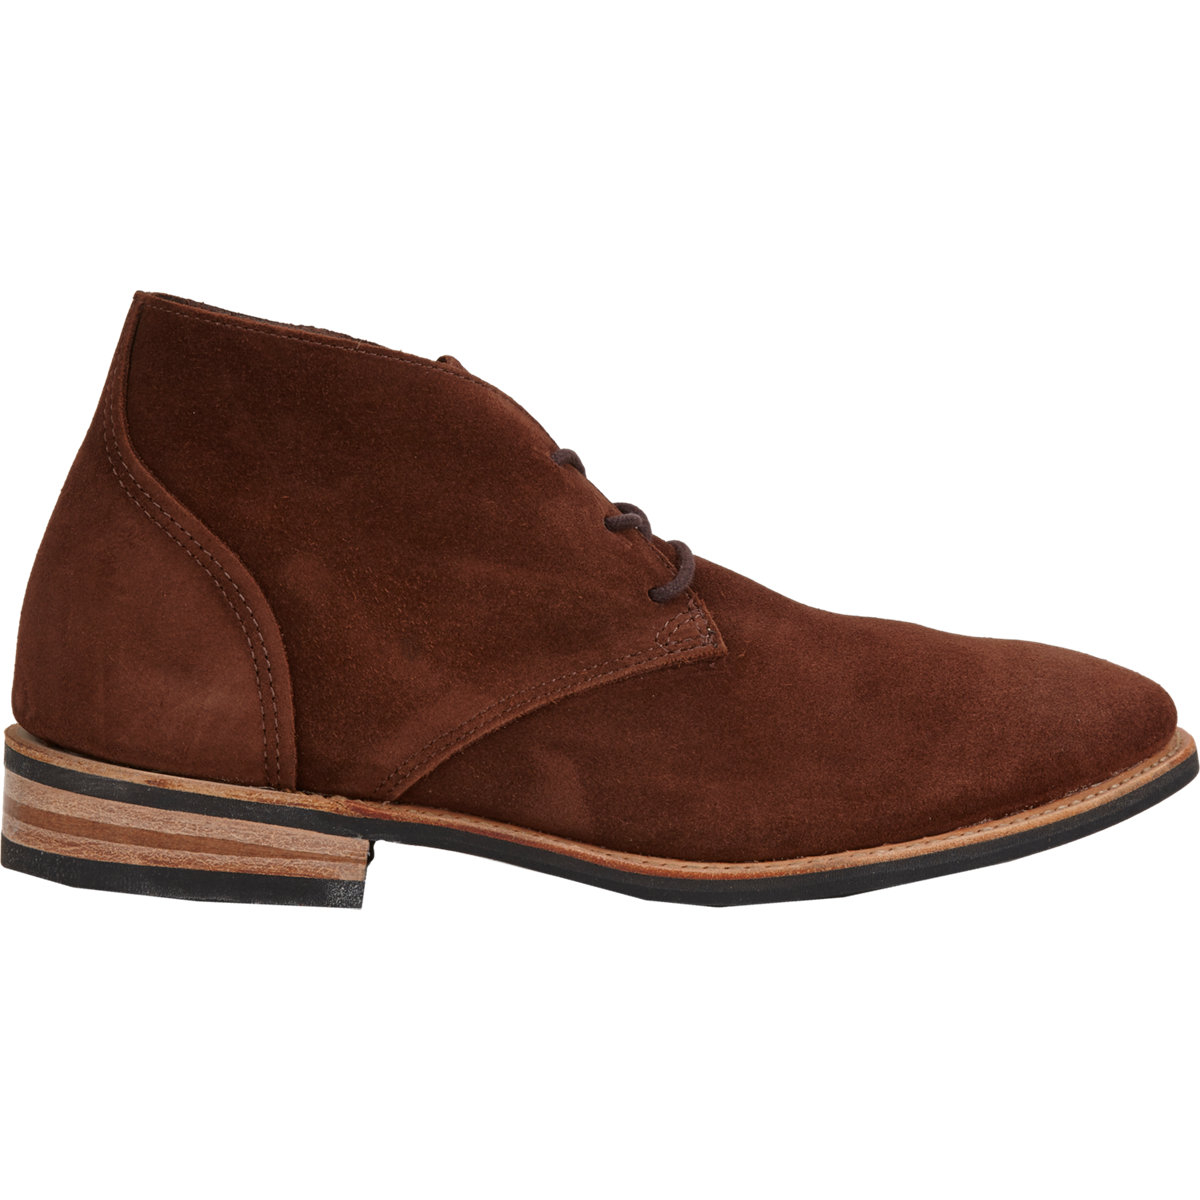 hh brown shoe company stein chukka boots in brown for